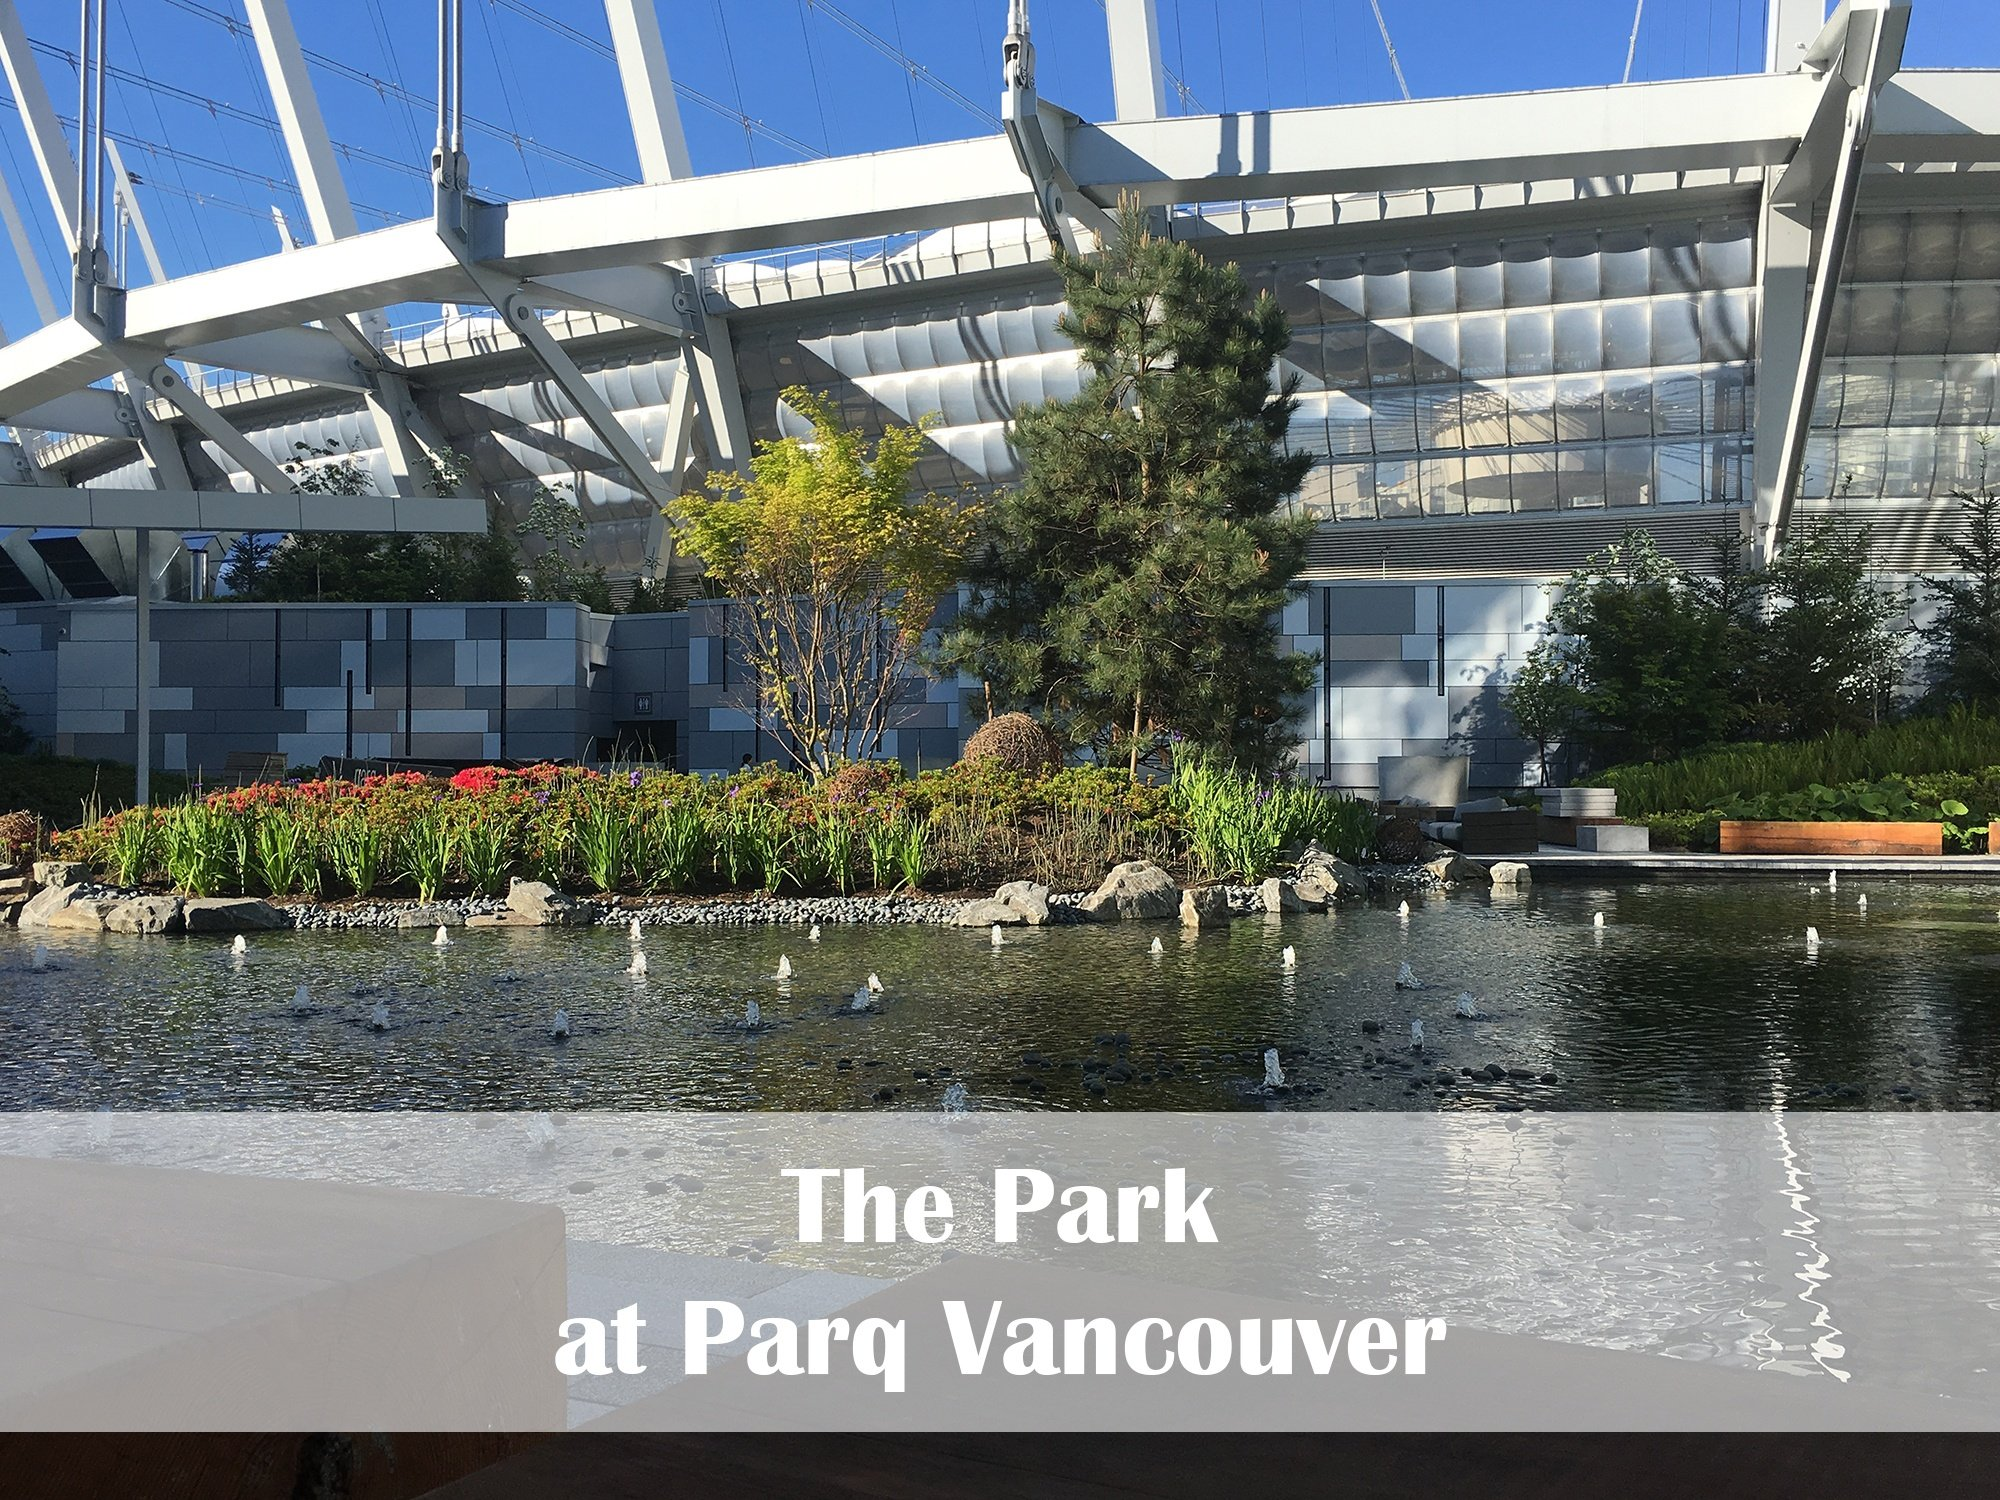 The Park at Parq Vancouver